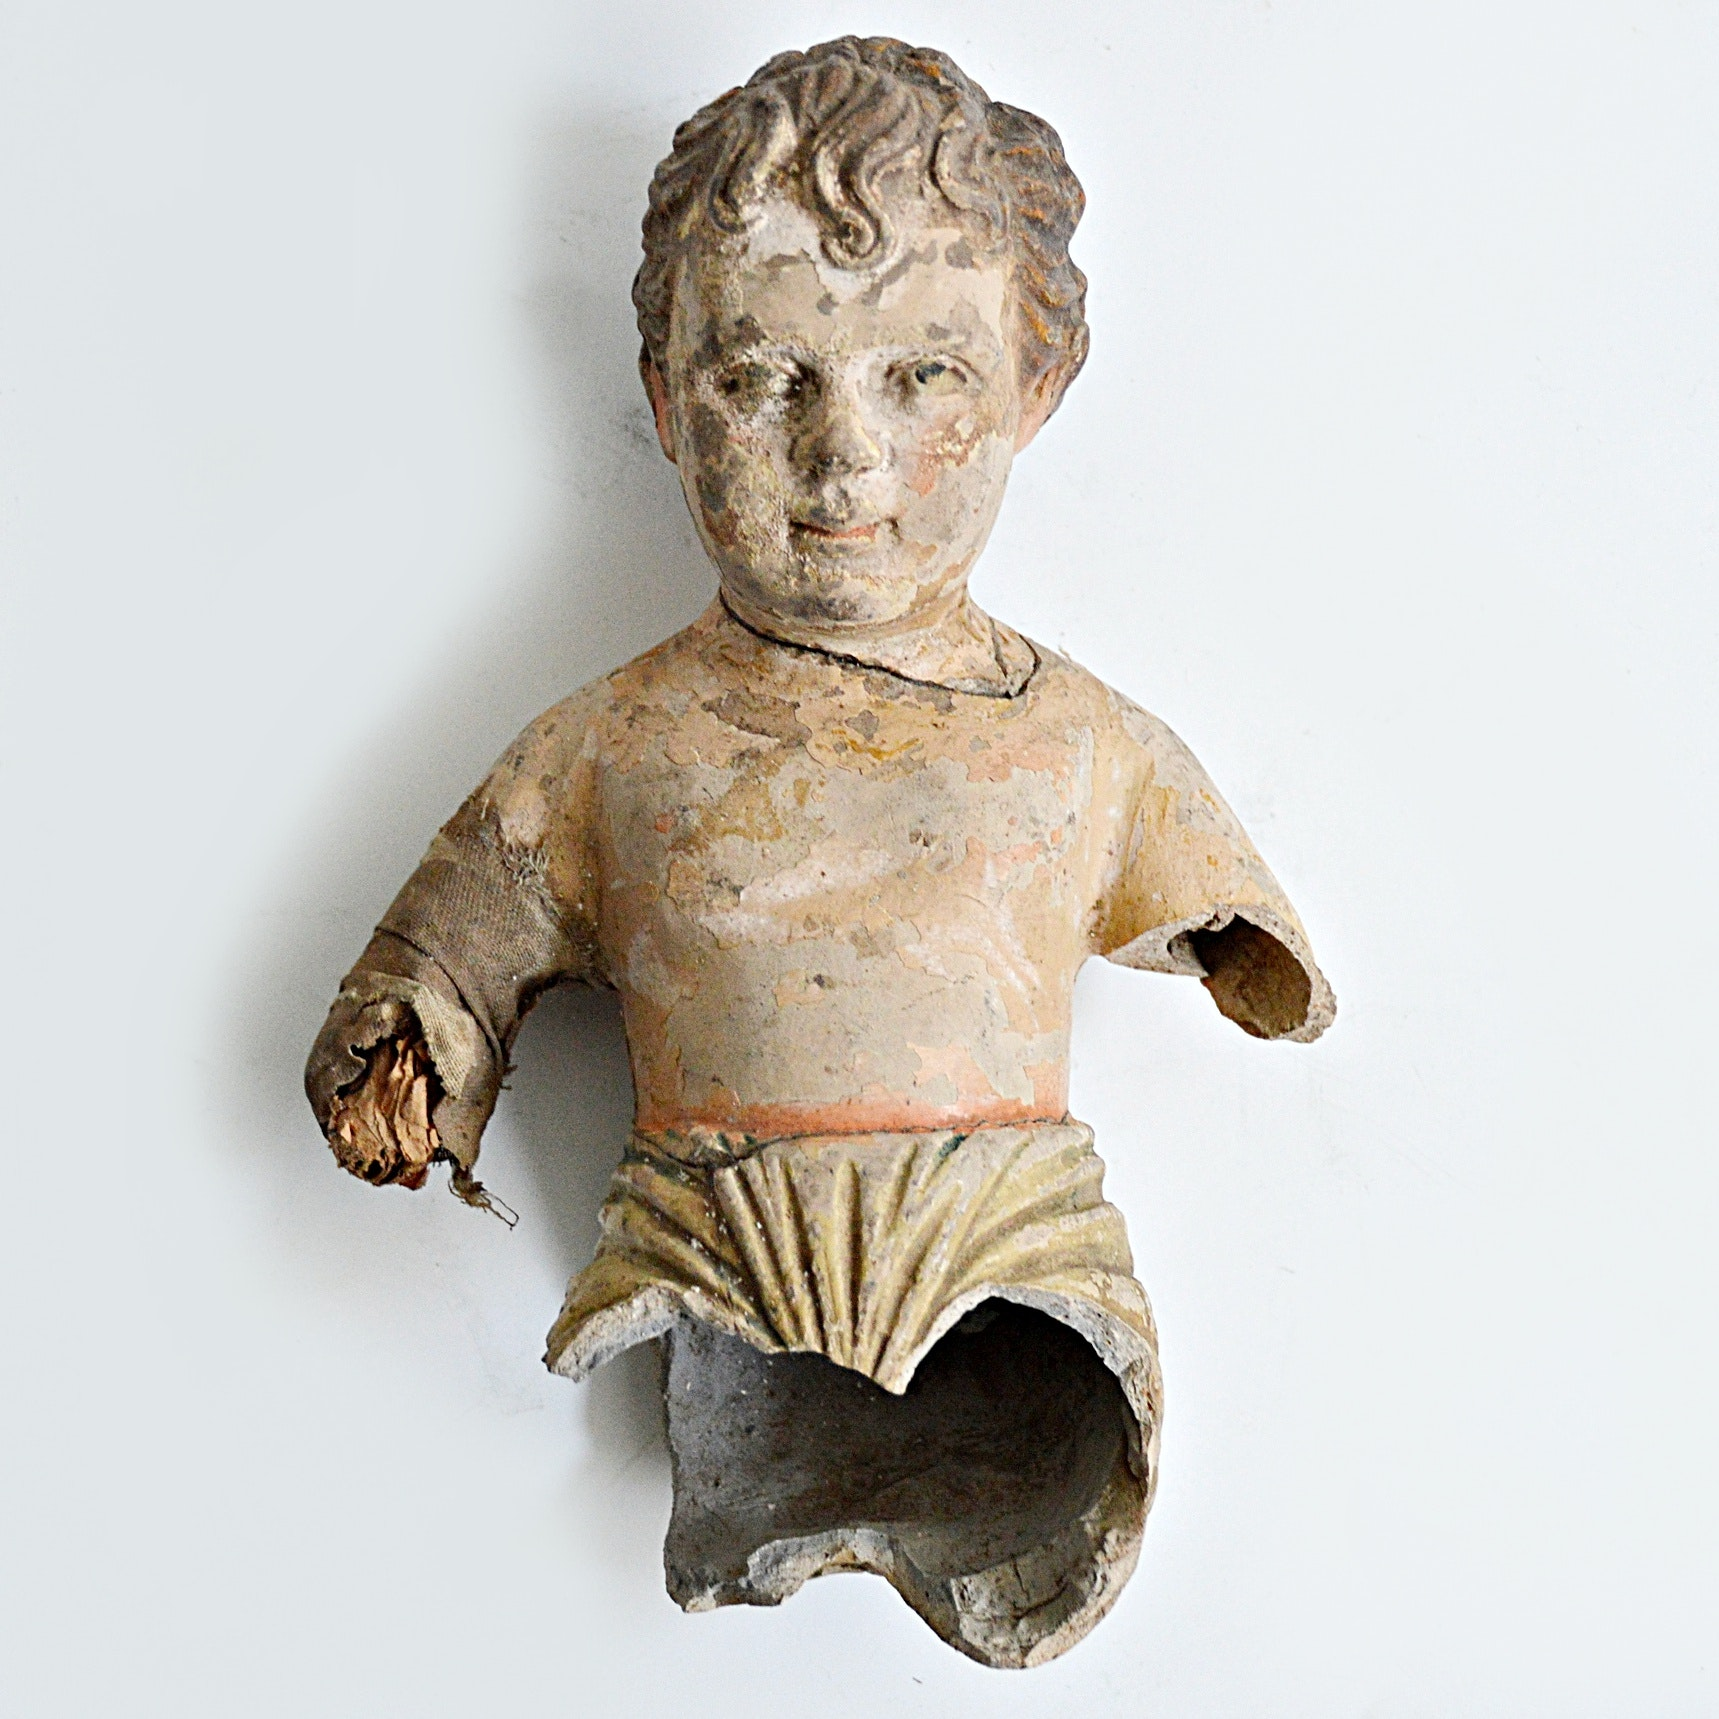 Early 19th Century Latin American Hand Painted Terra Cotta Sculpture